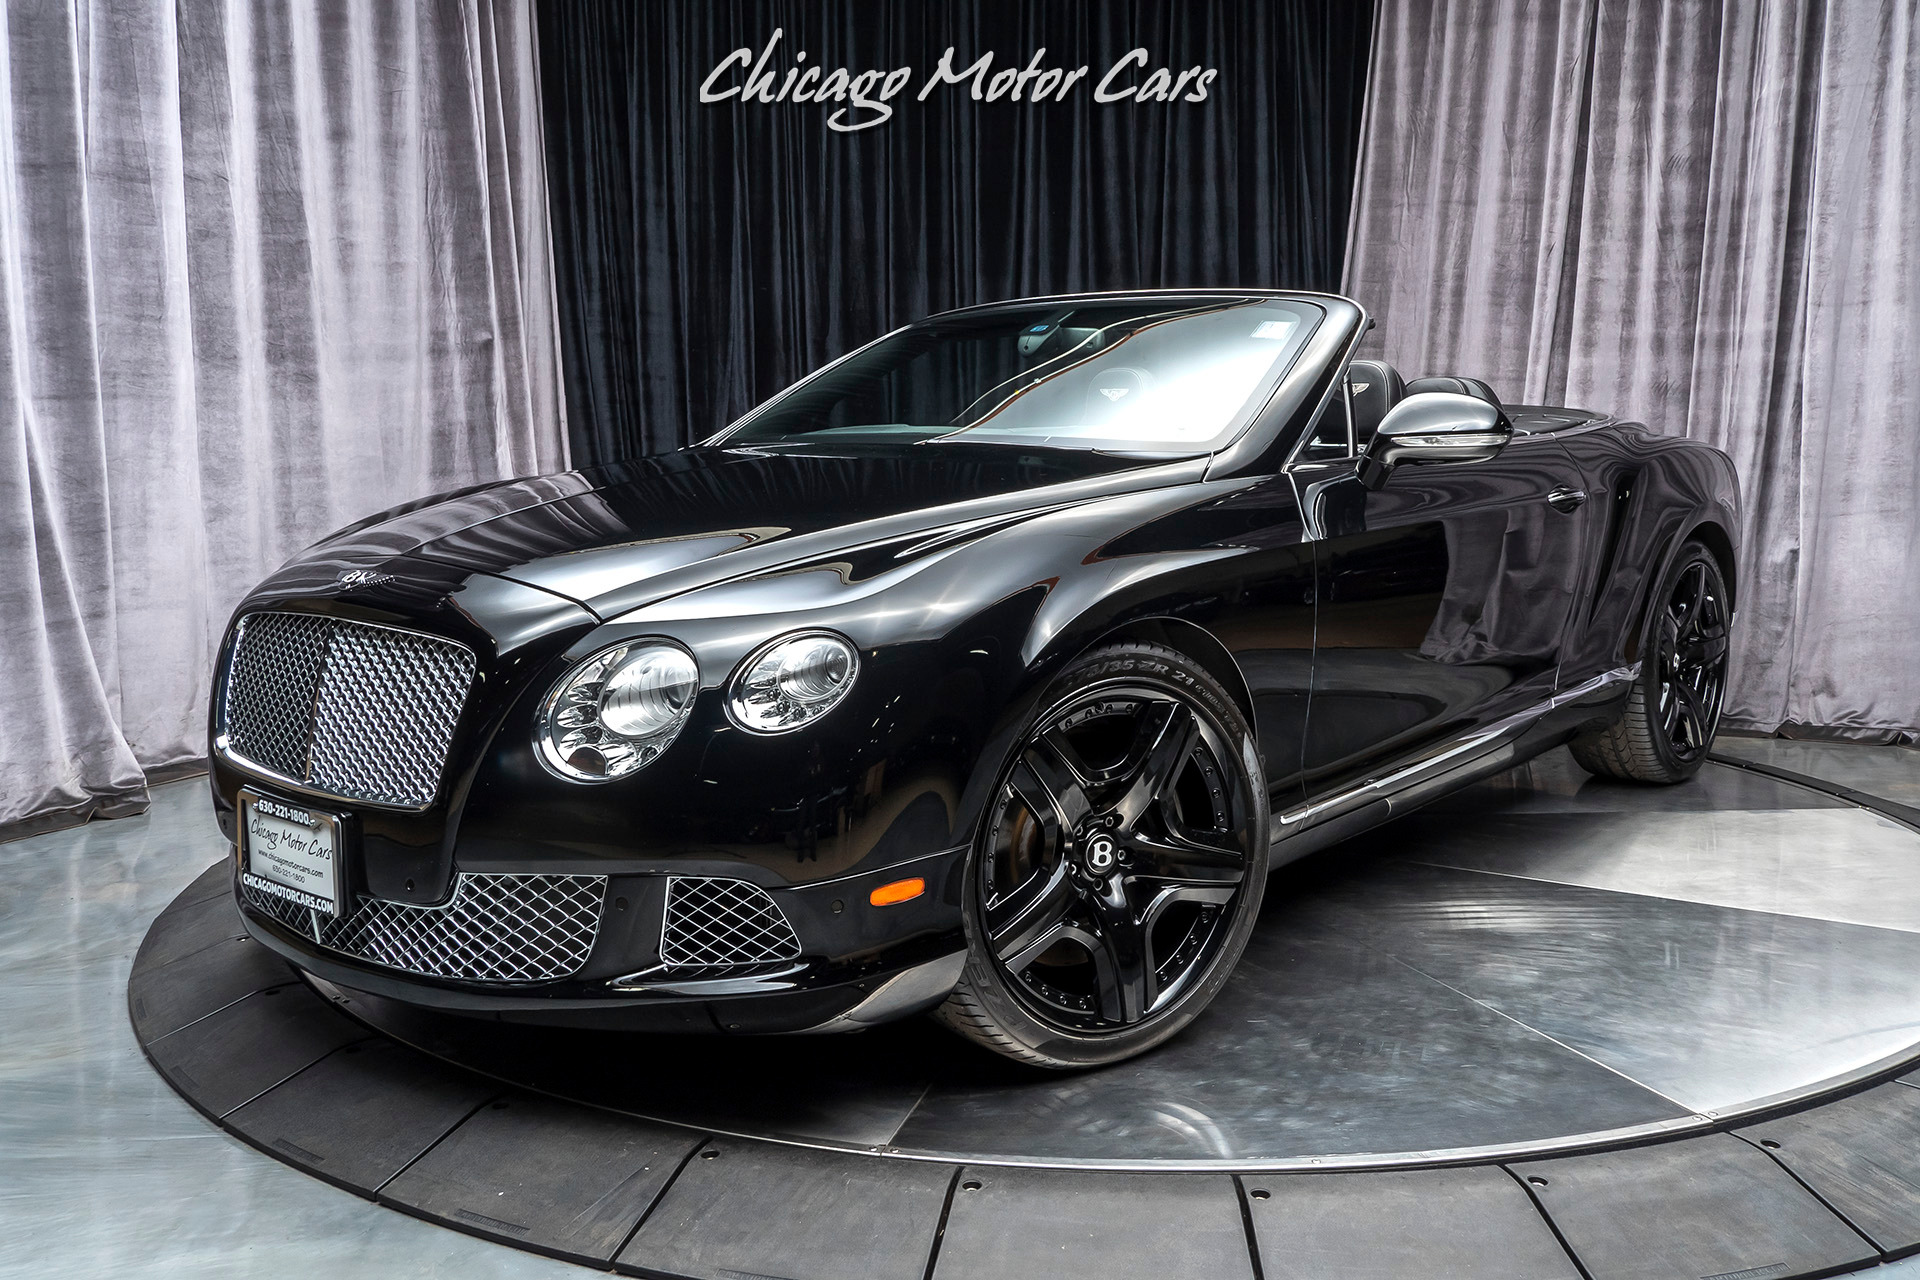 Used 2012 Bentley Continental Gtc Convertible Mulliner Package Triple Black For Sale Special Pricing Chicago Motor Cars Stock 15652